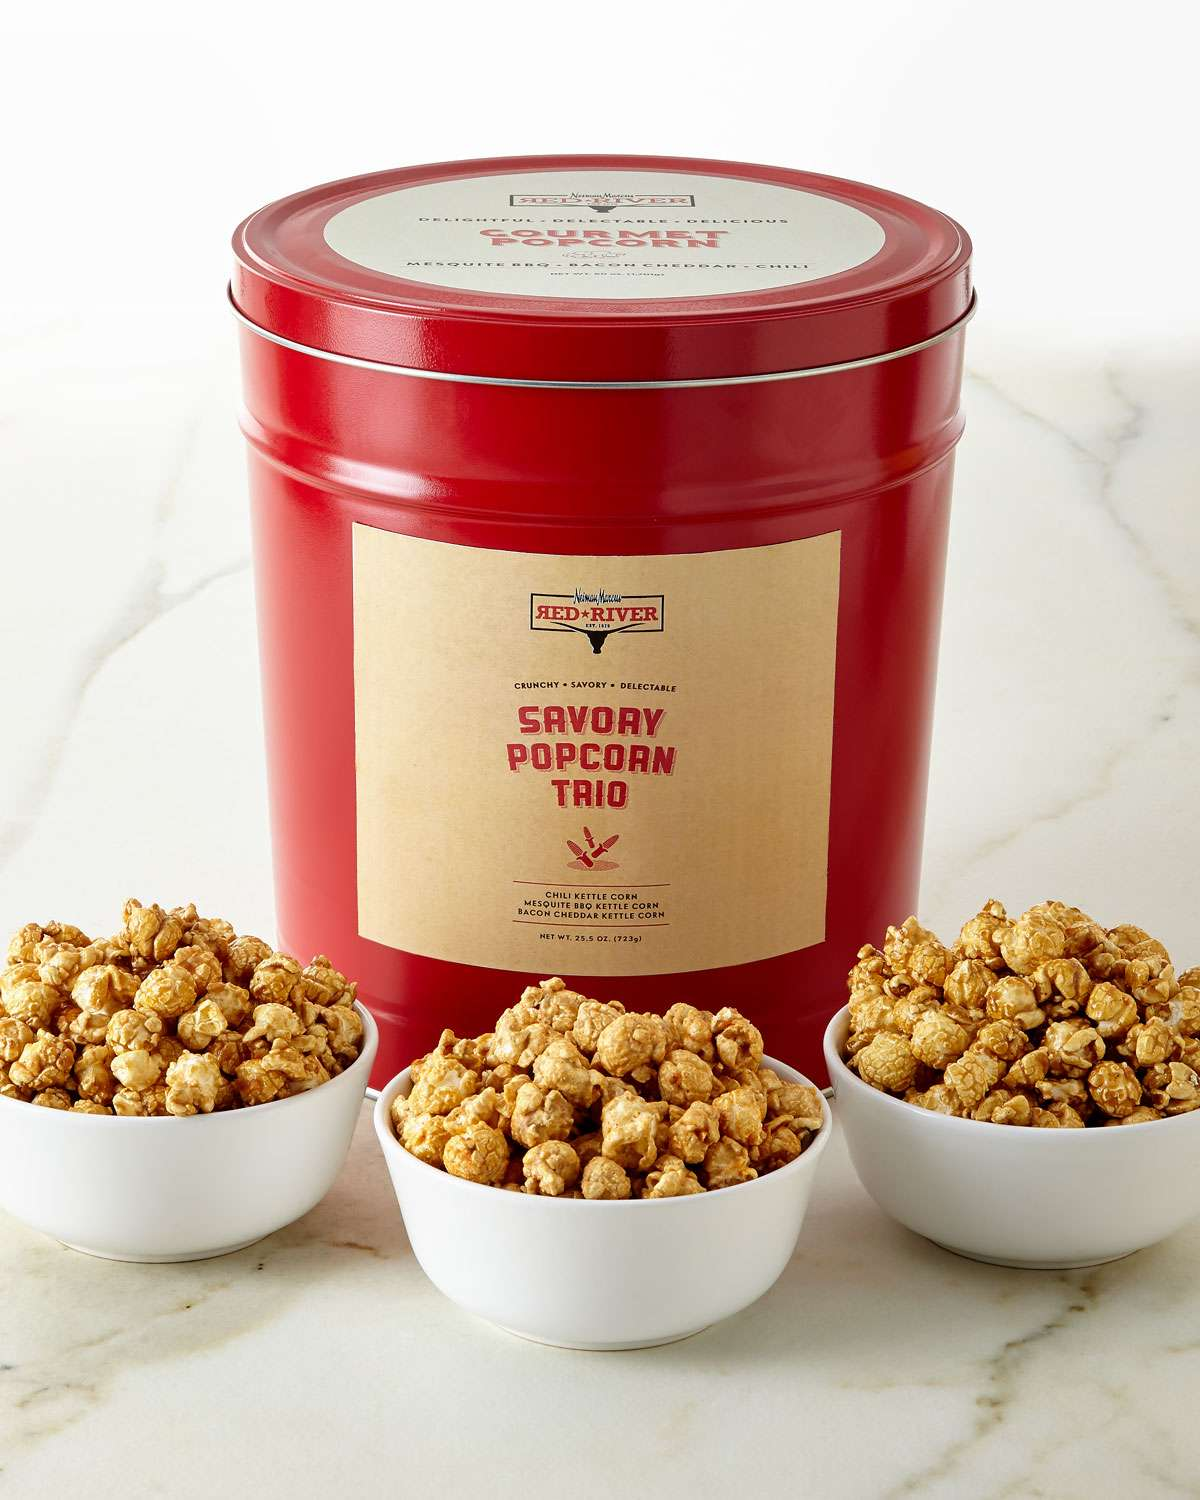 Red River Savory 3-Flavor Popcorn Tin